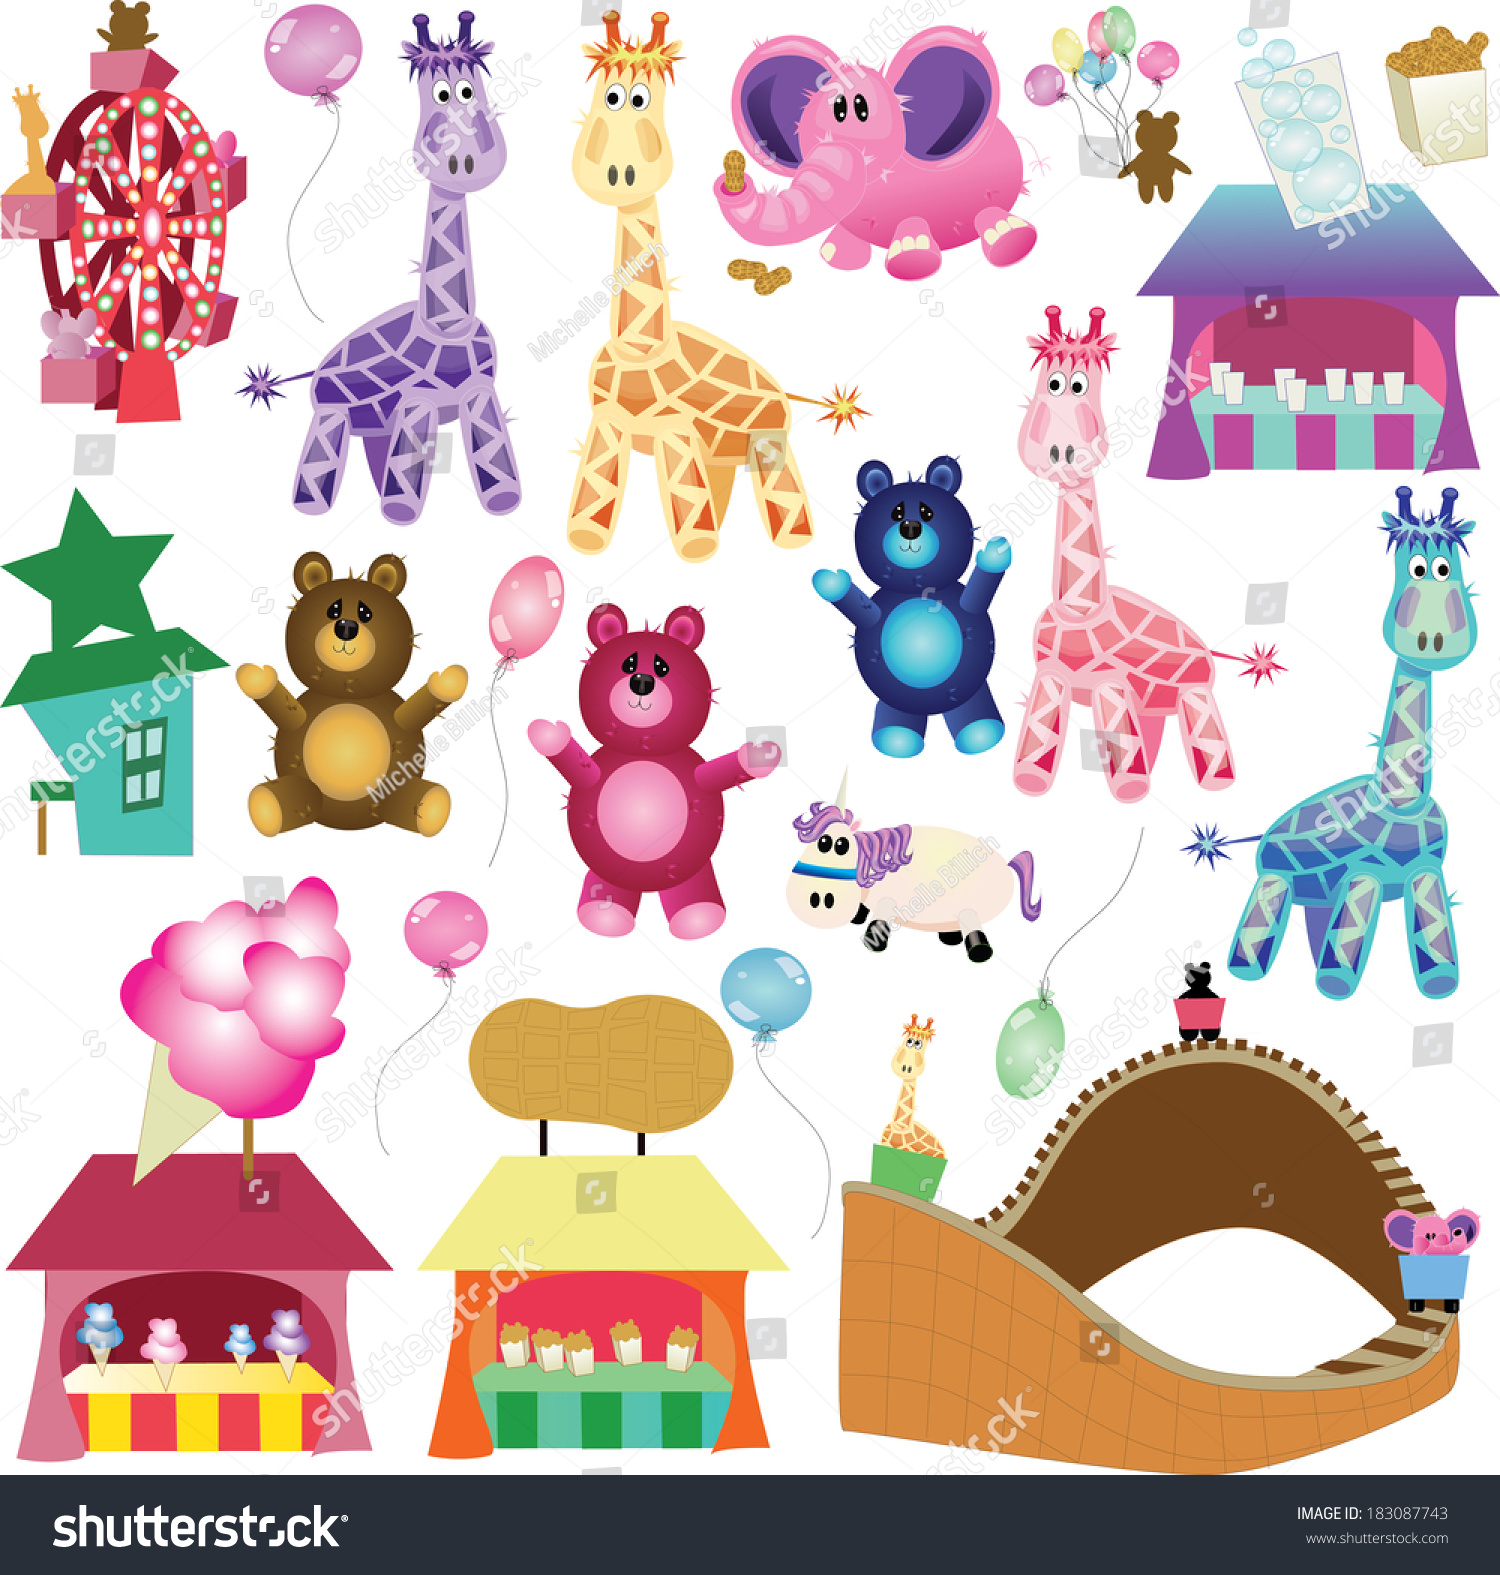 Super Soft Stuffed Animals For Babies, Carnival Stuffed Animalsbean Bag Gangs Carnivalyou Stock Vector Royalty Free 183087743